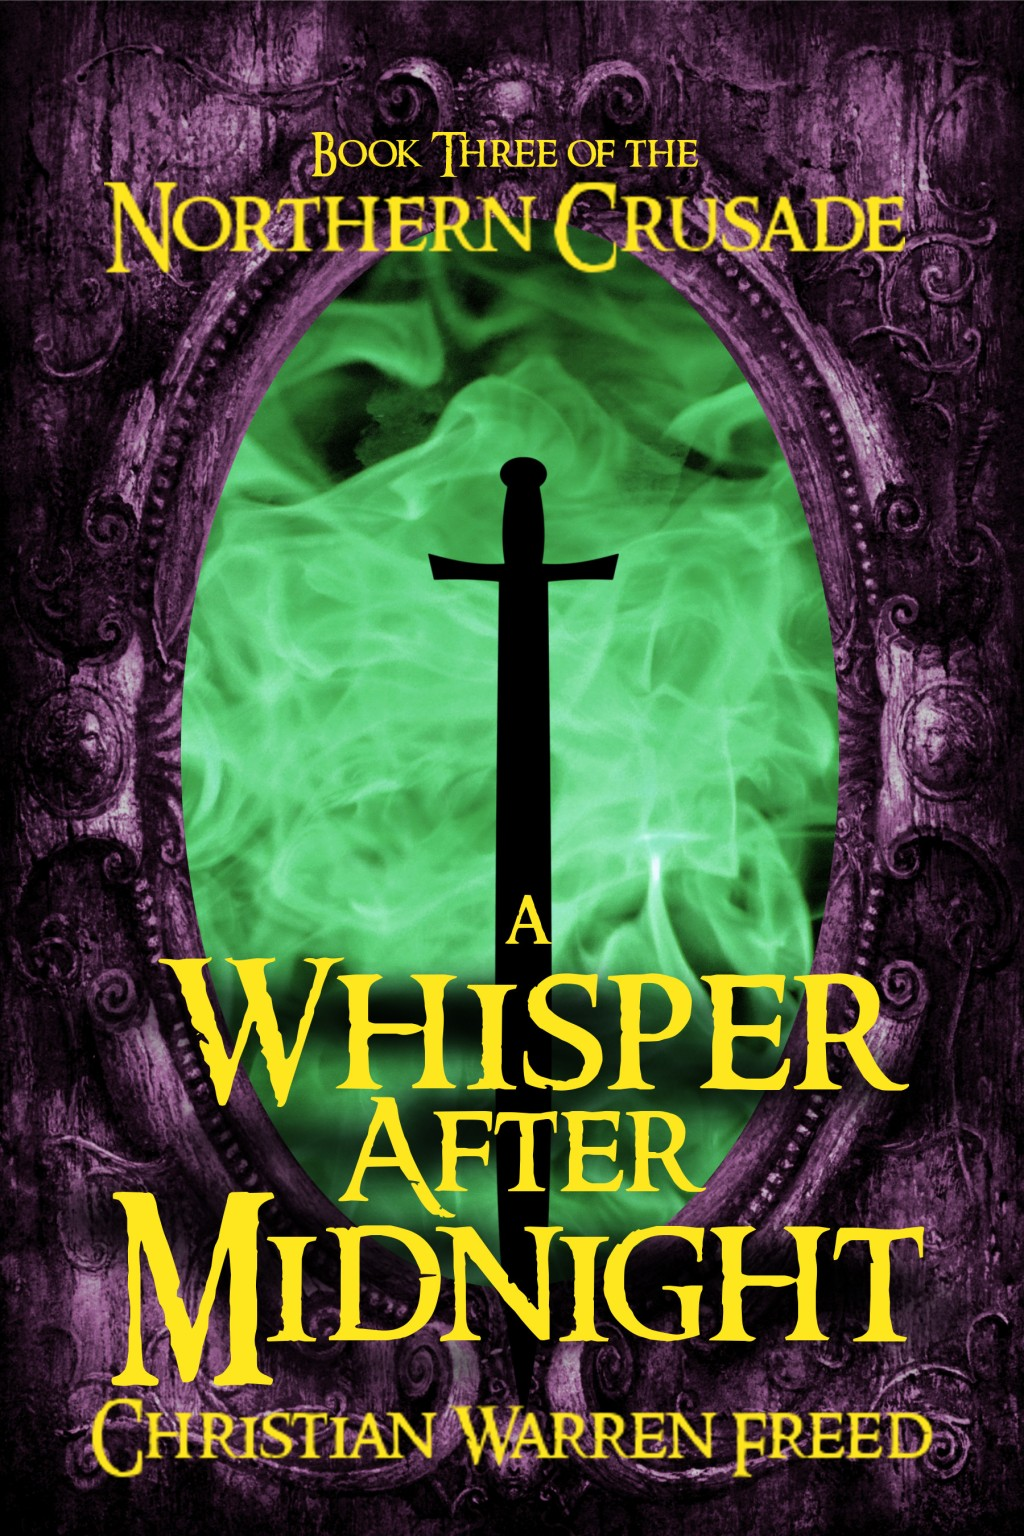 A_Whisper_After_Midnight_New_Cover